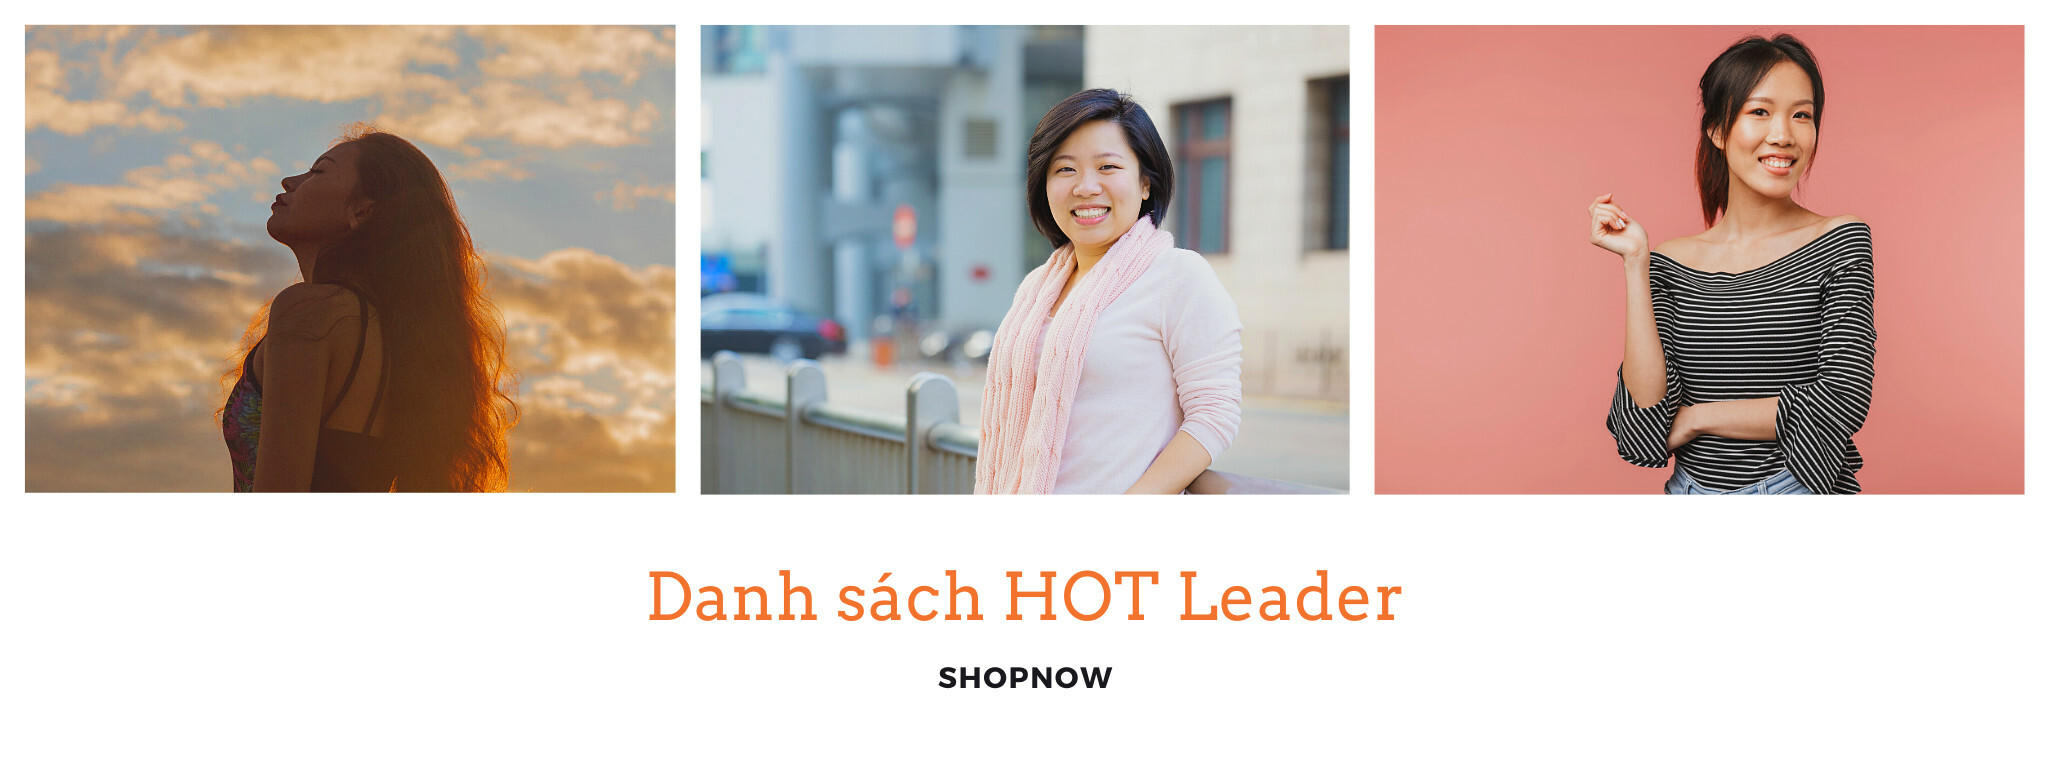 Hot Leader ở SHOPNOW.